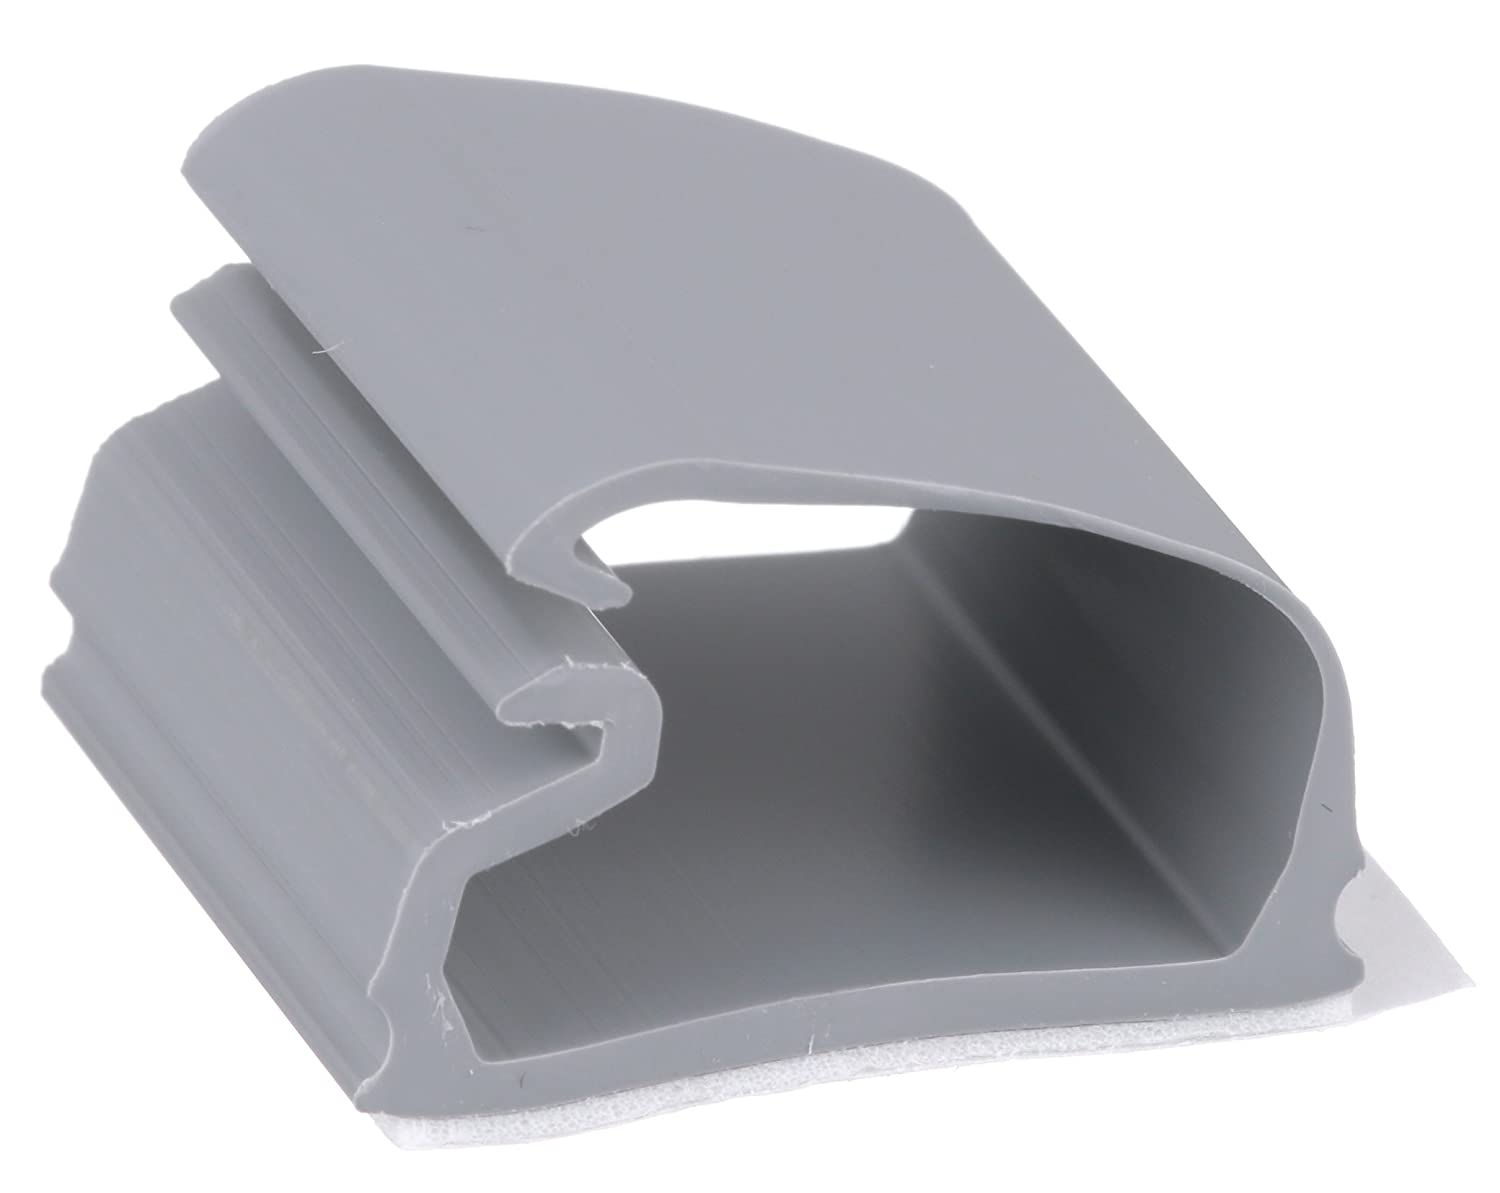 0.36-Inch Bundle Panduit LC5-A-C8 Latching Clip 100-Pack Light Gray PVC Adhesive Backed